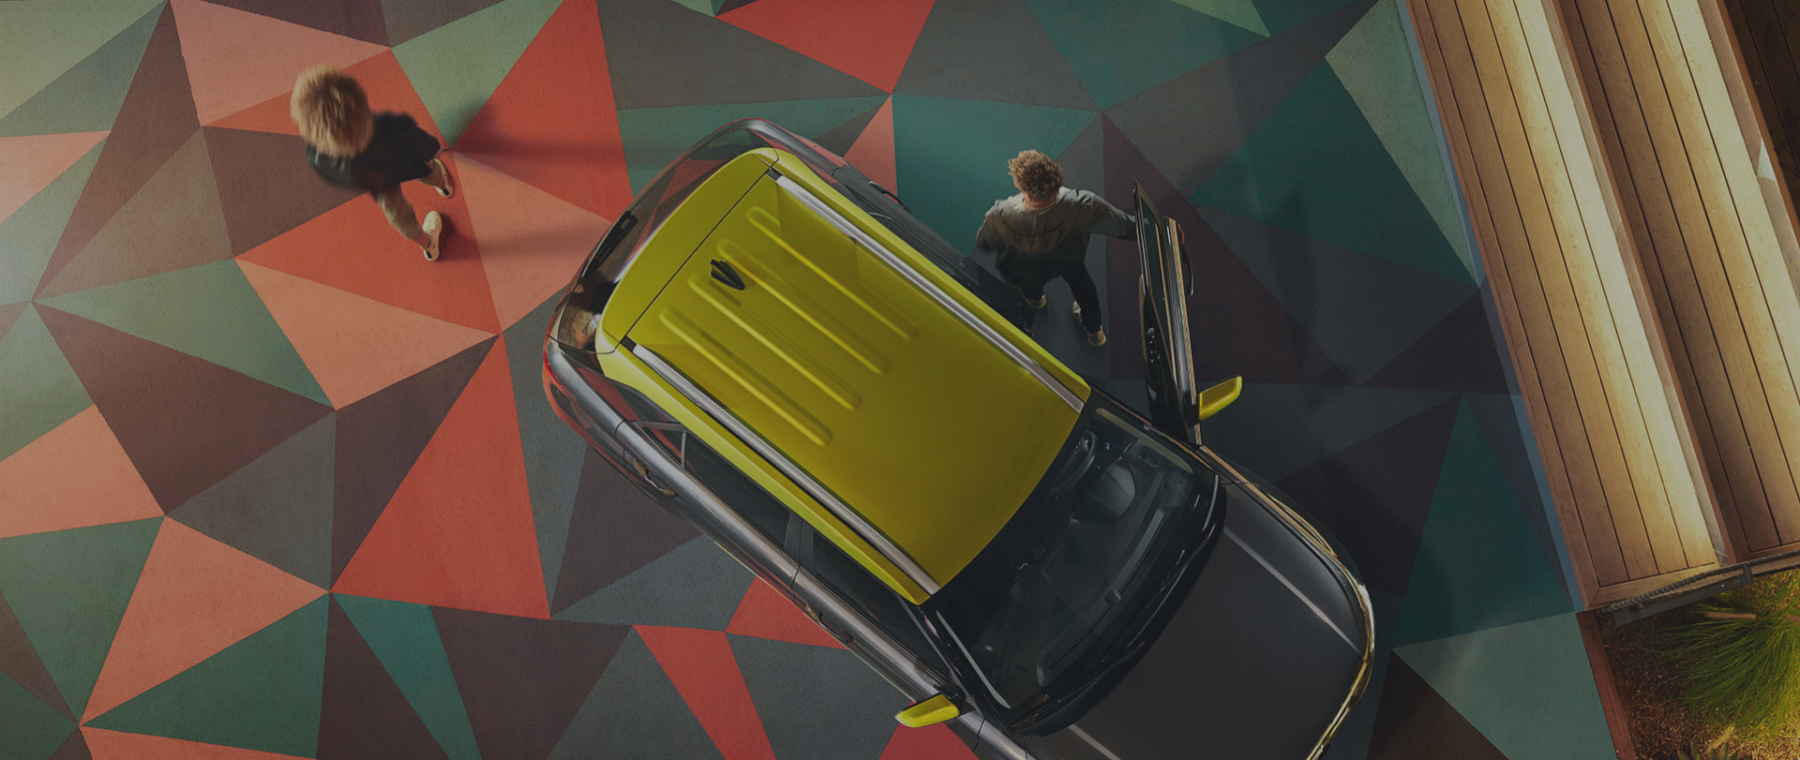 Top down of green SUV, 2 people walking away on a triangle patterned floor